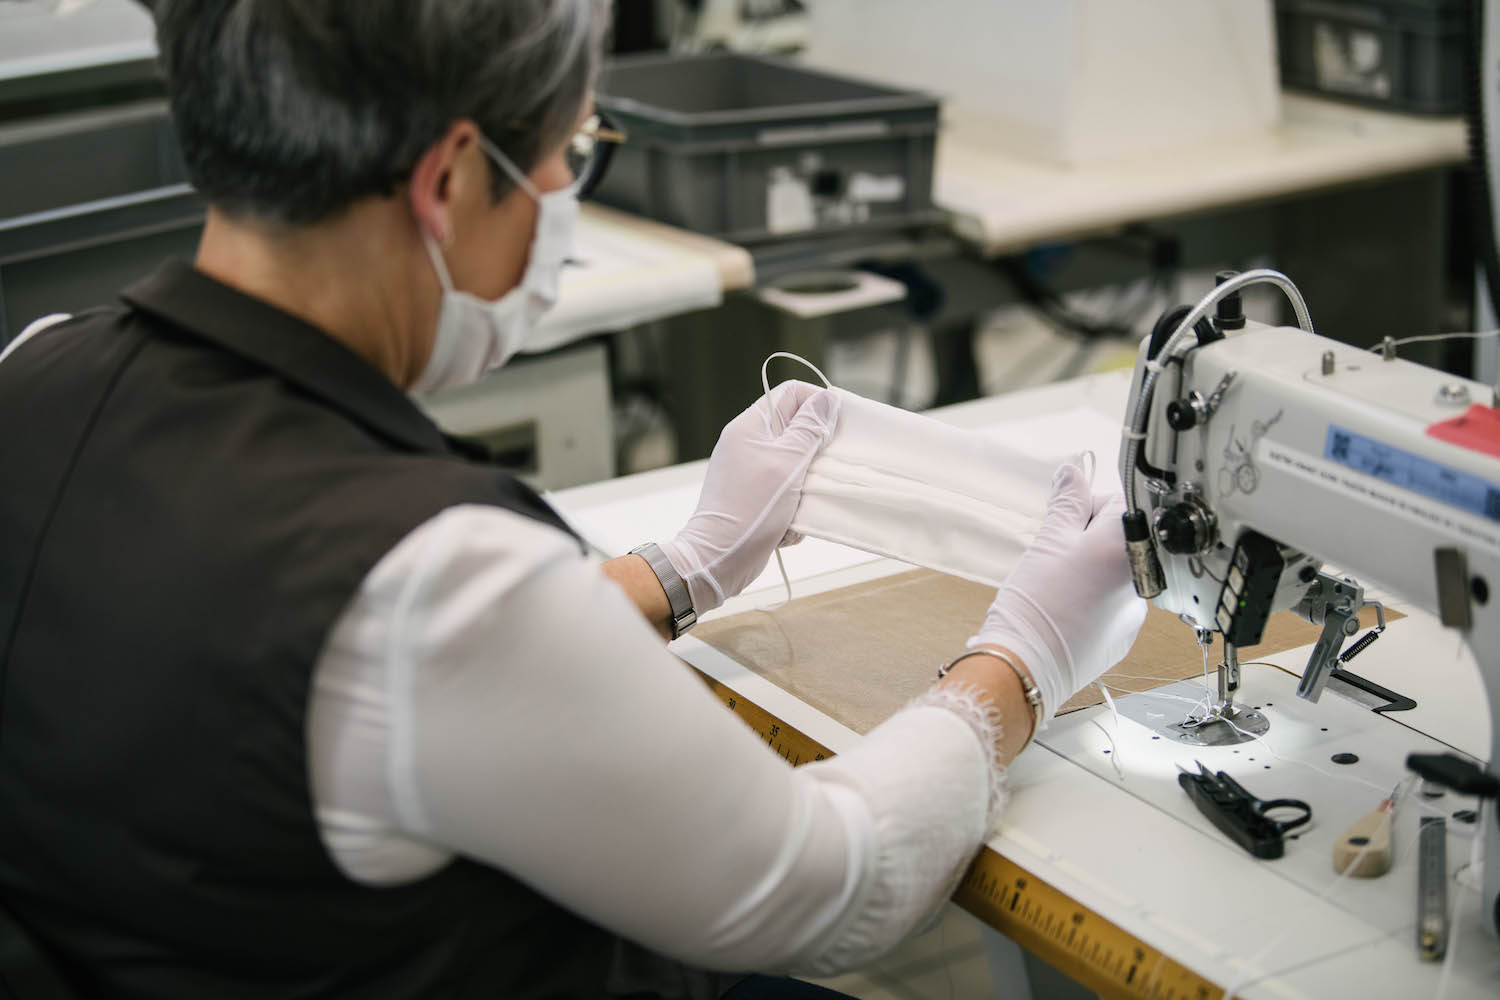 Louis Vuitton is Now Making Face Masks at its French Production Sites